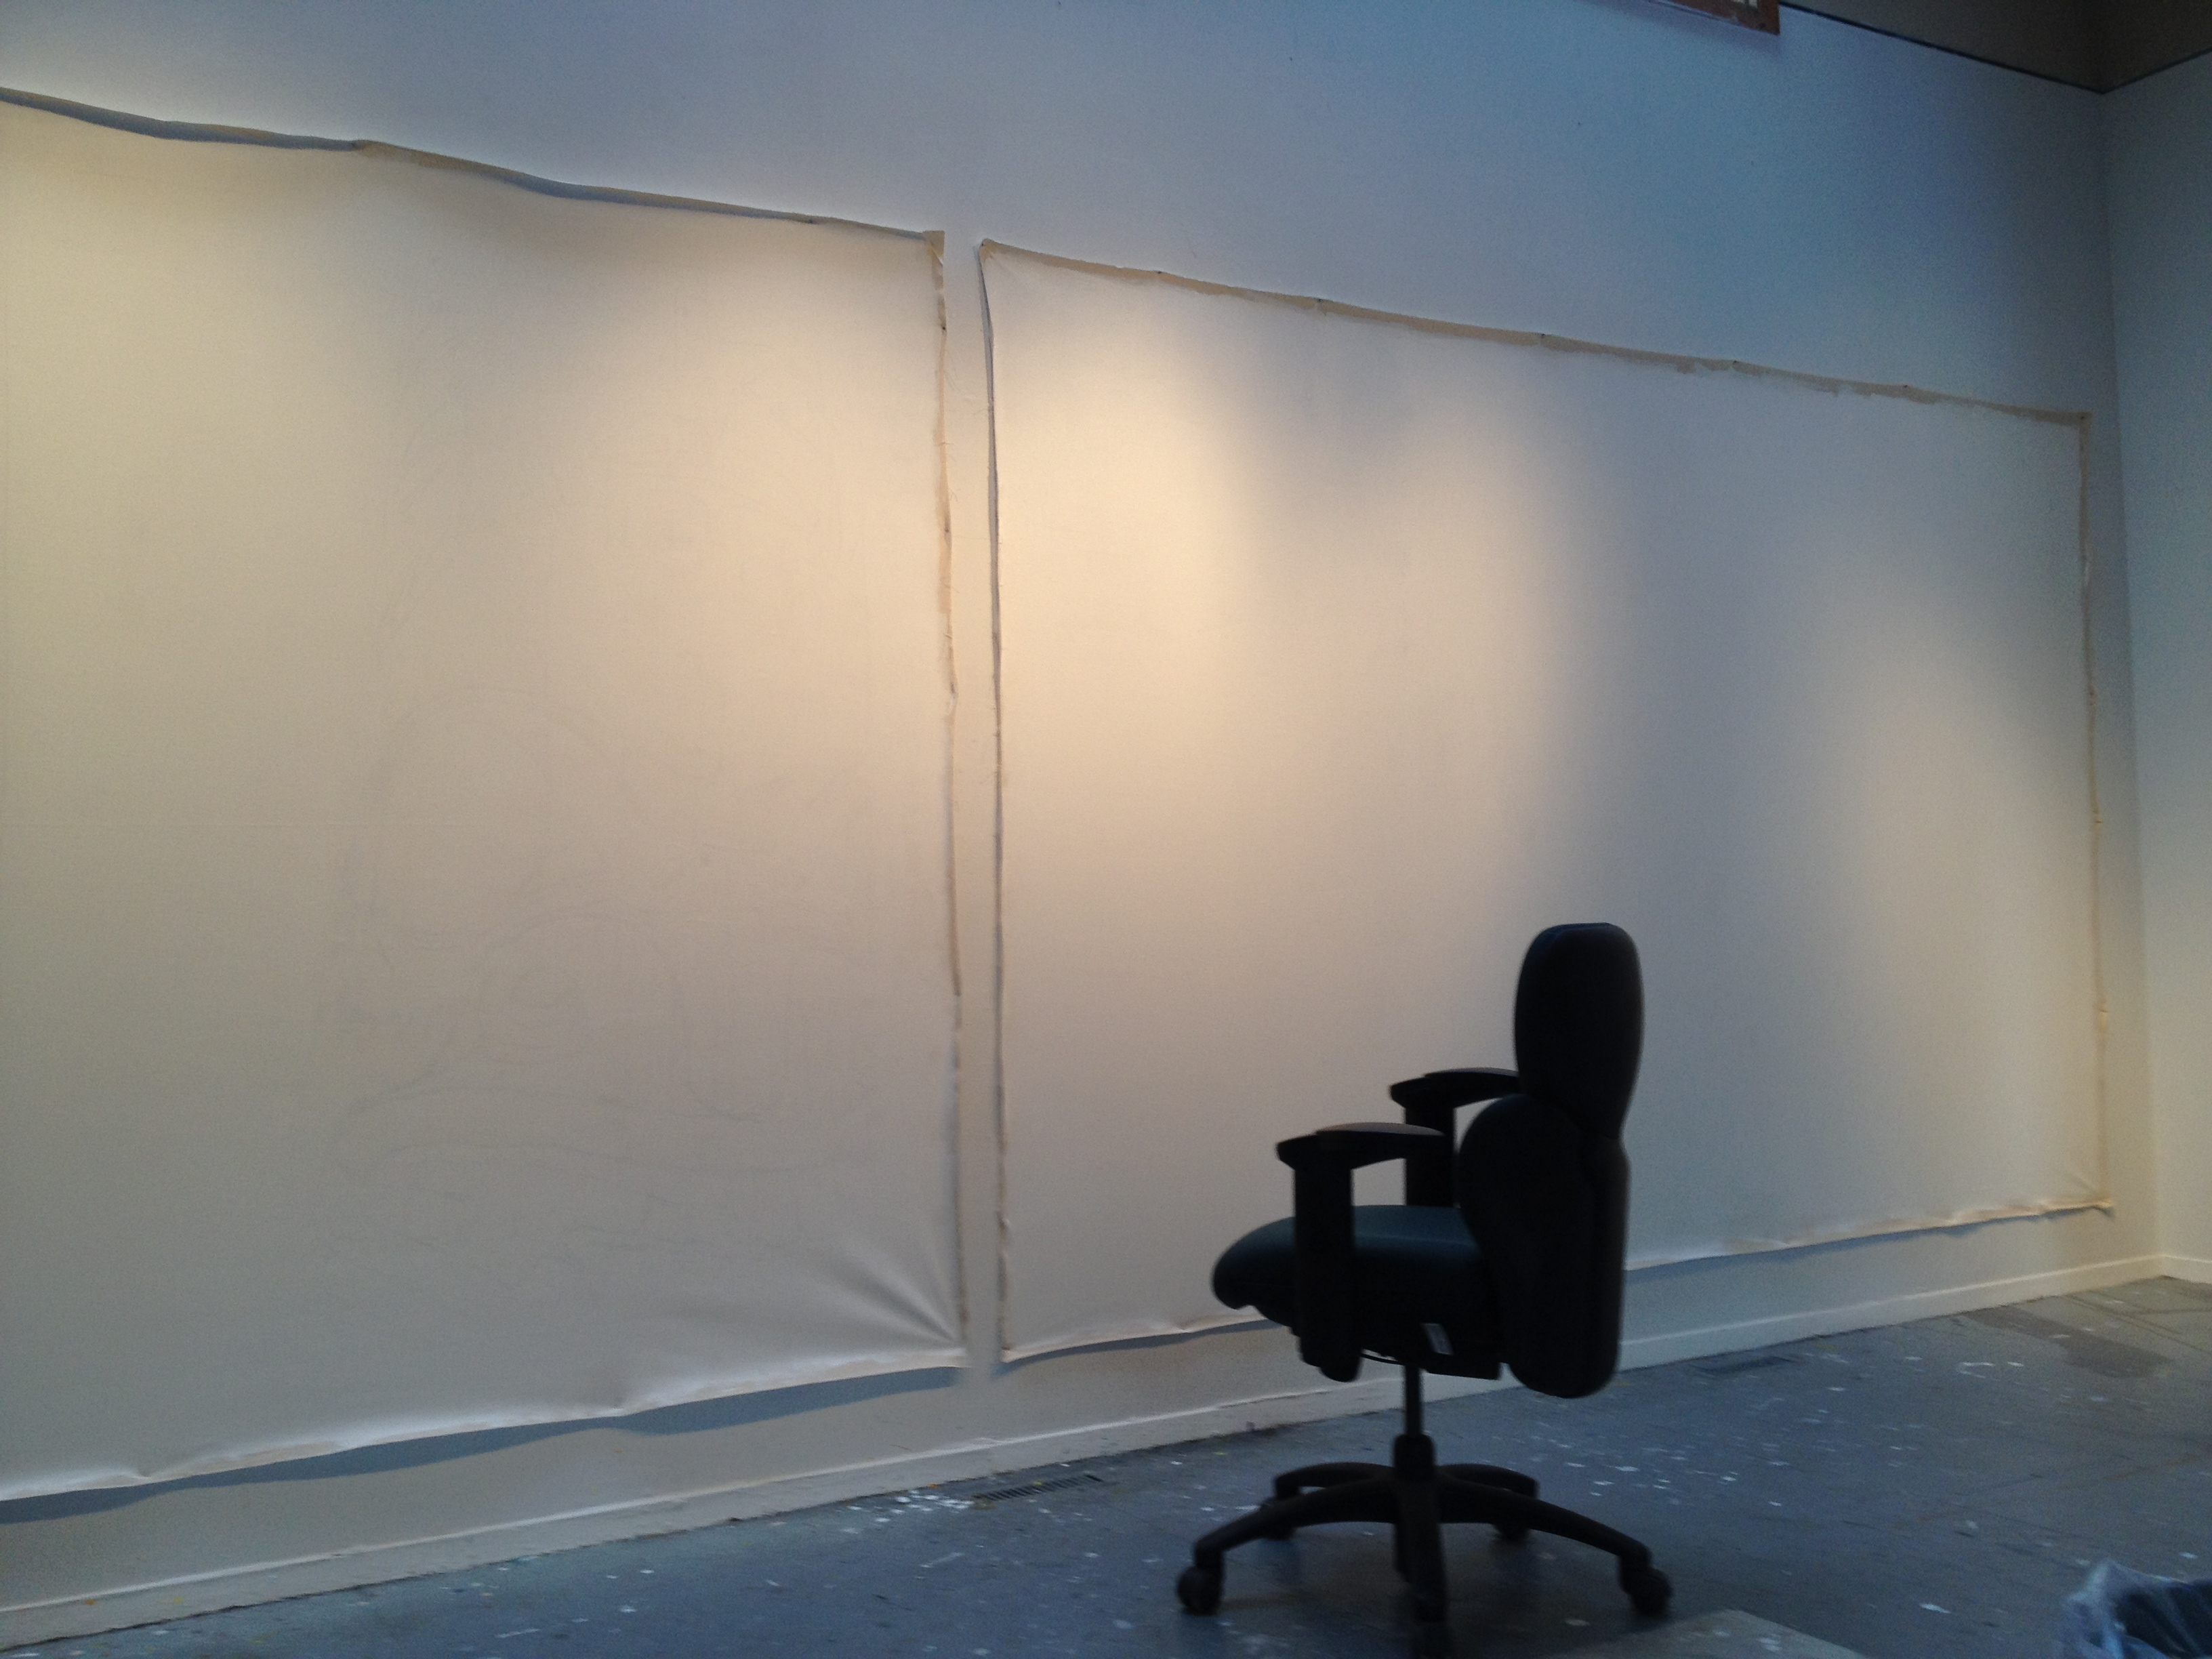 Big Blank Canvas all prepped and ready to go in the Gerin-Lajoie Studio at The Banff Centre.